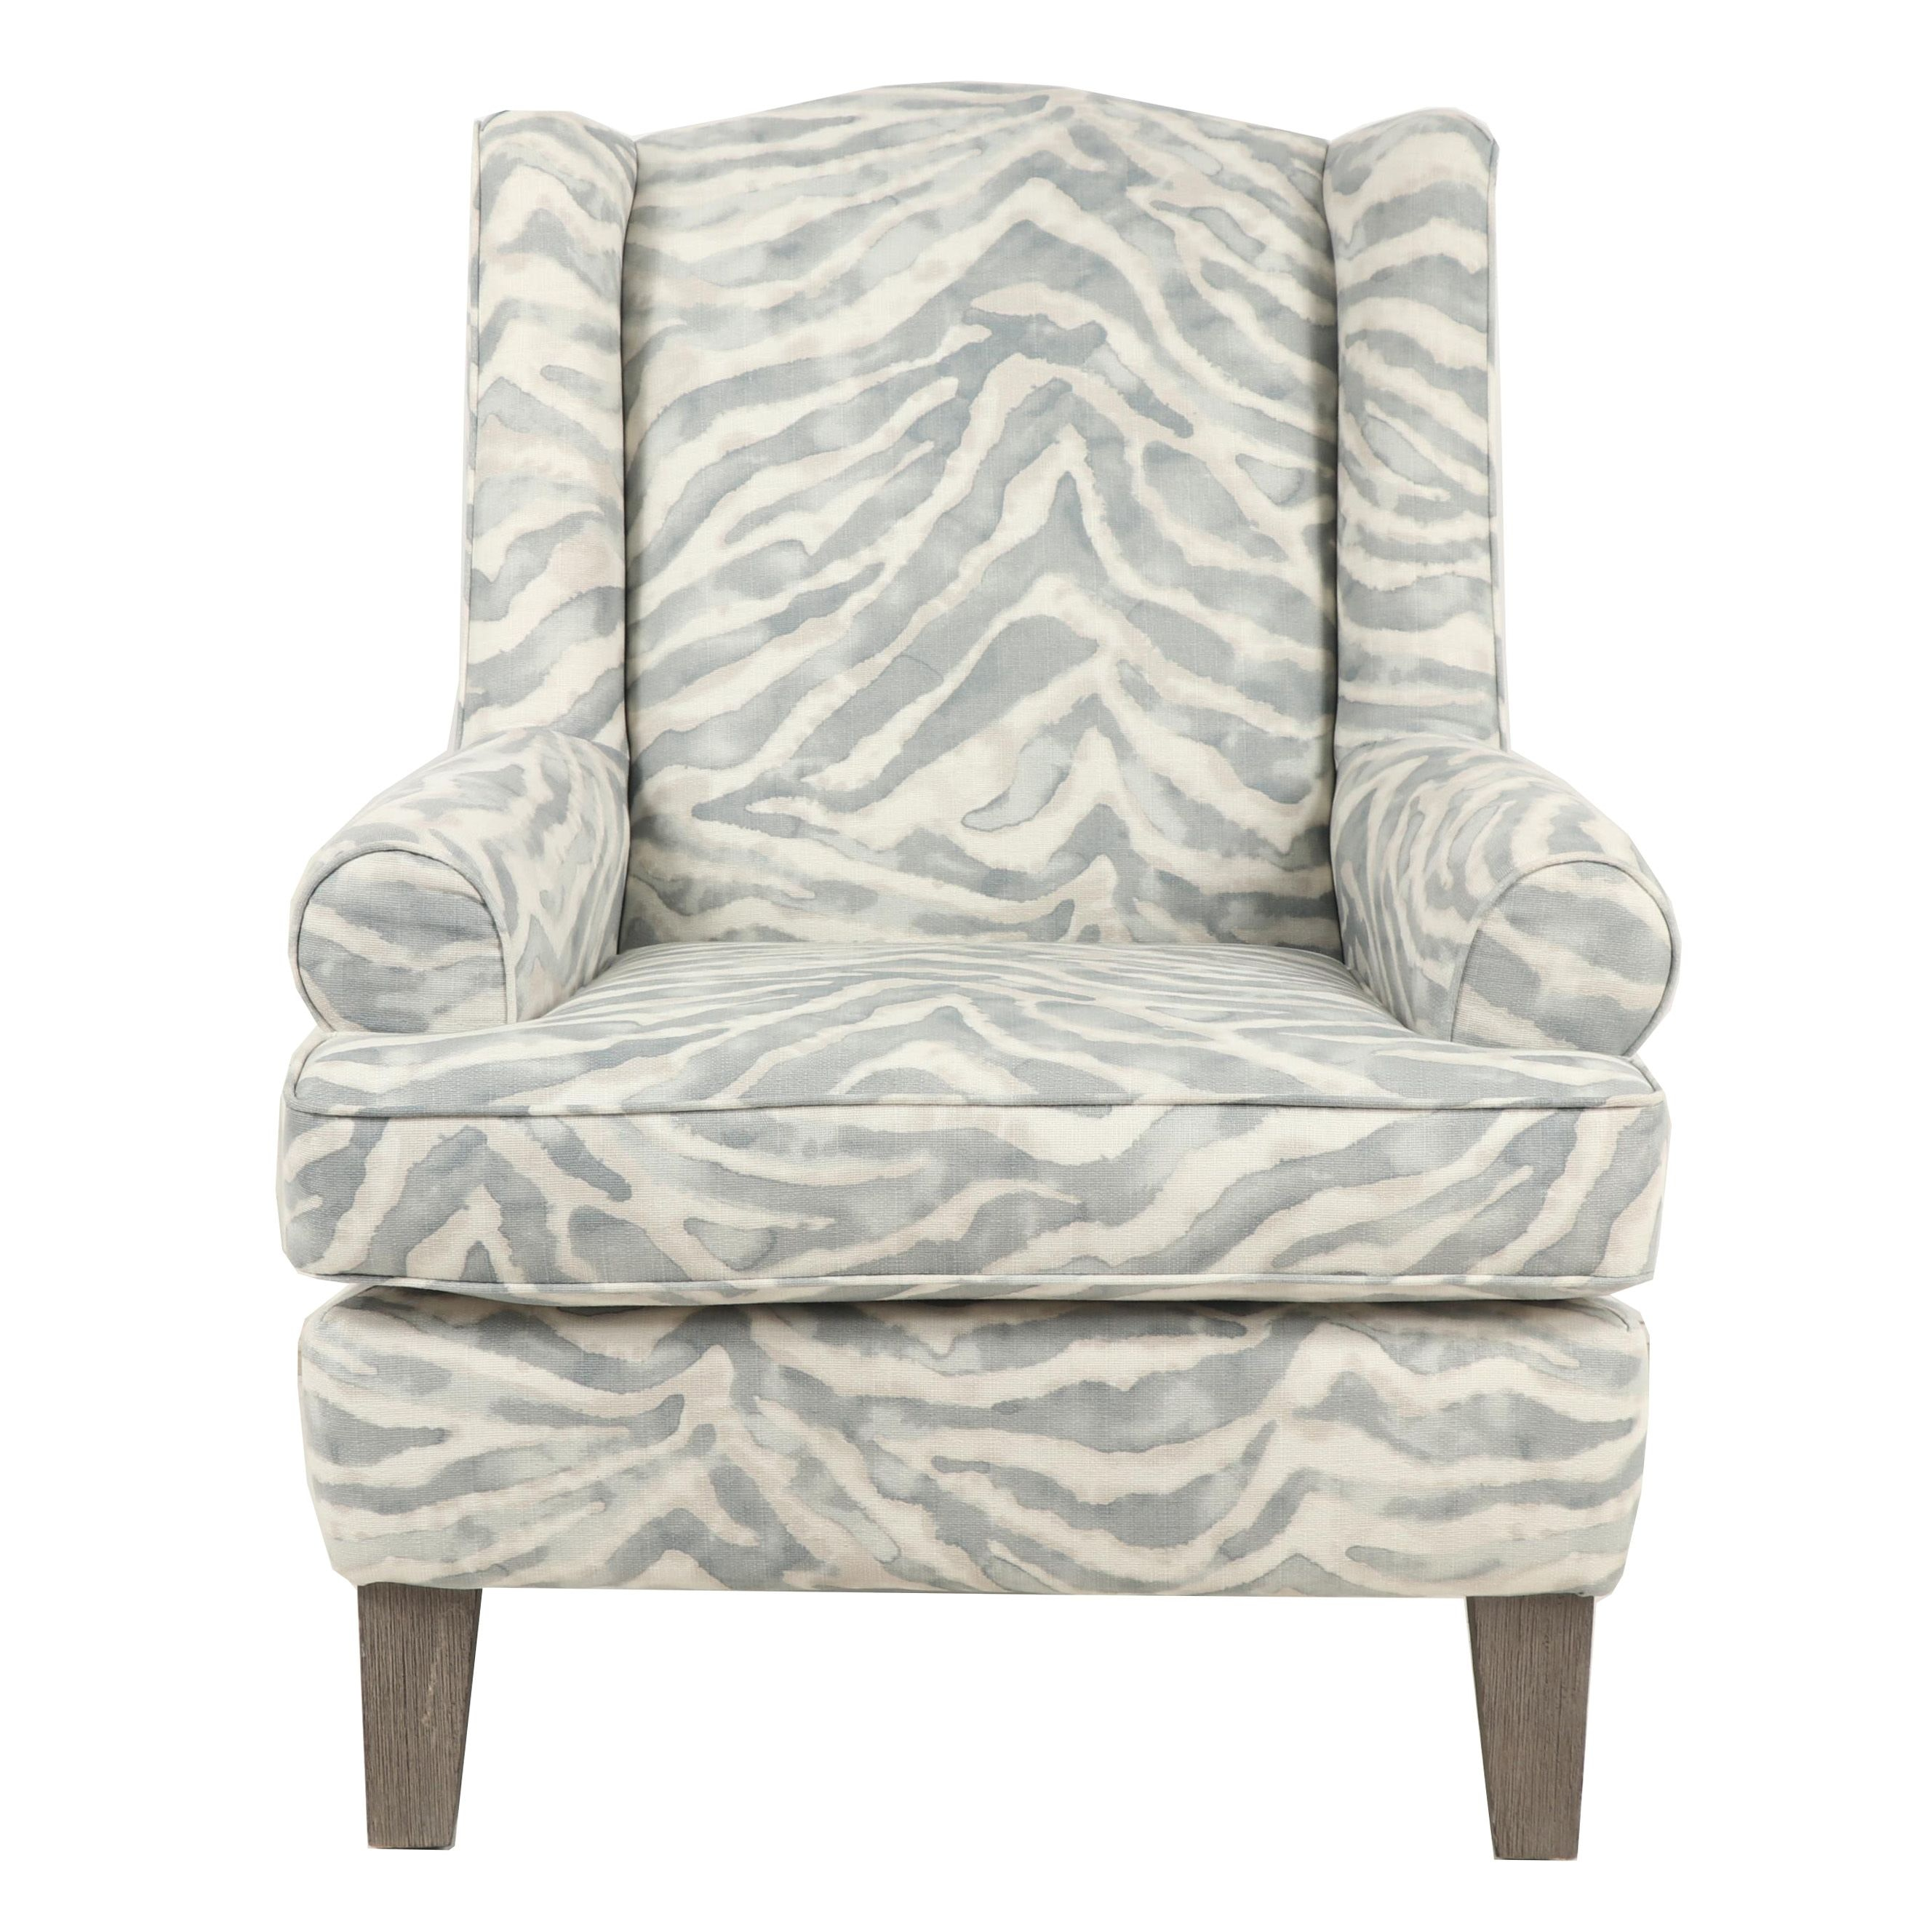 Contemporary Wingback Armchair with Diffused Zebra Stripe Upholstery